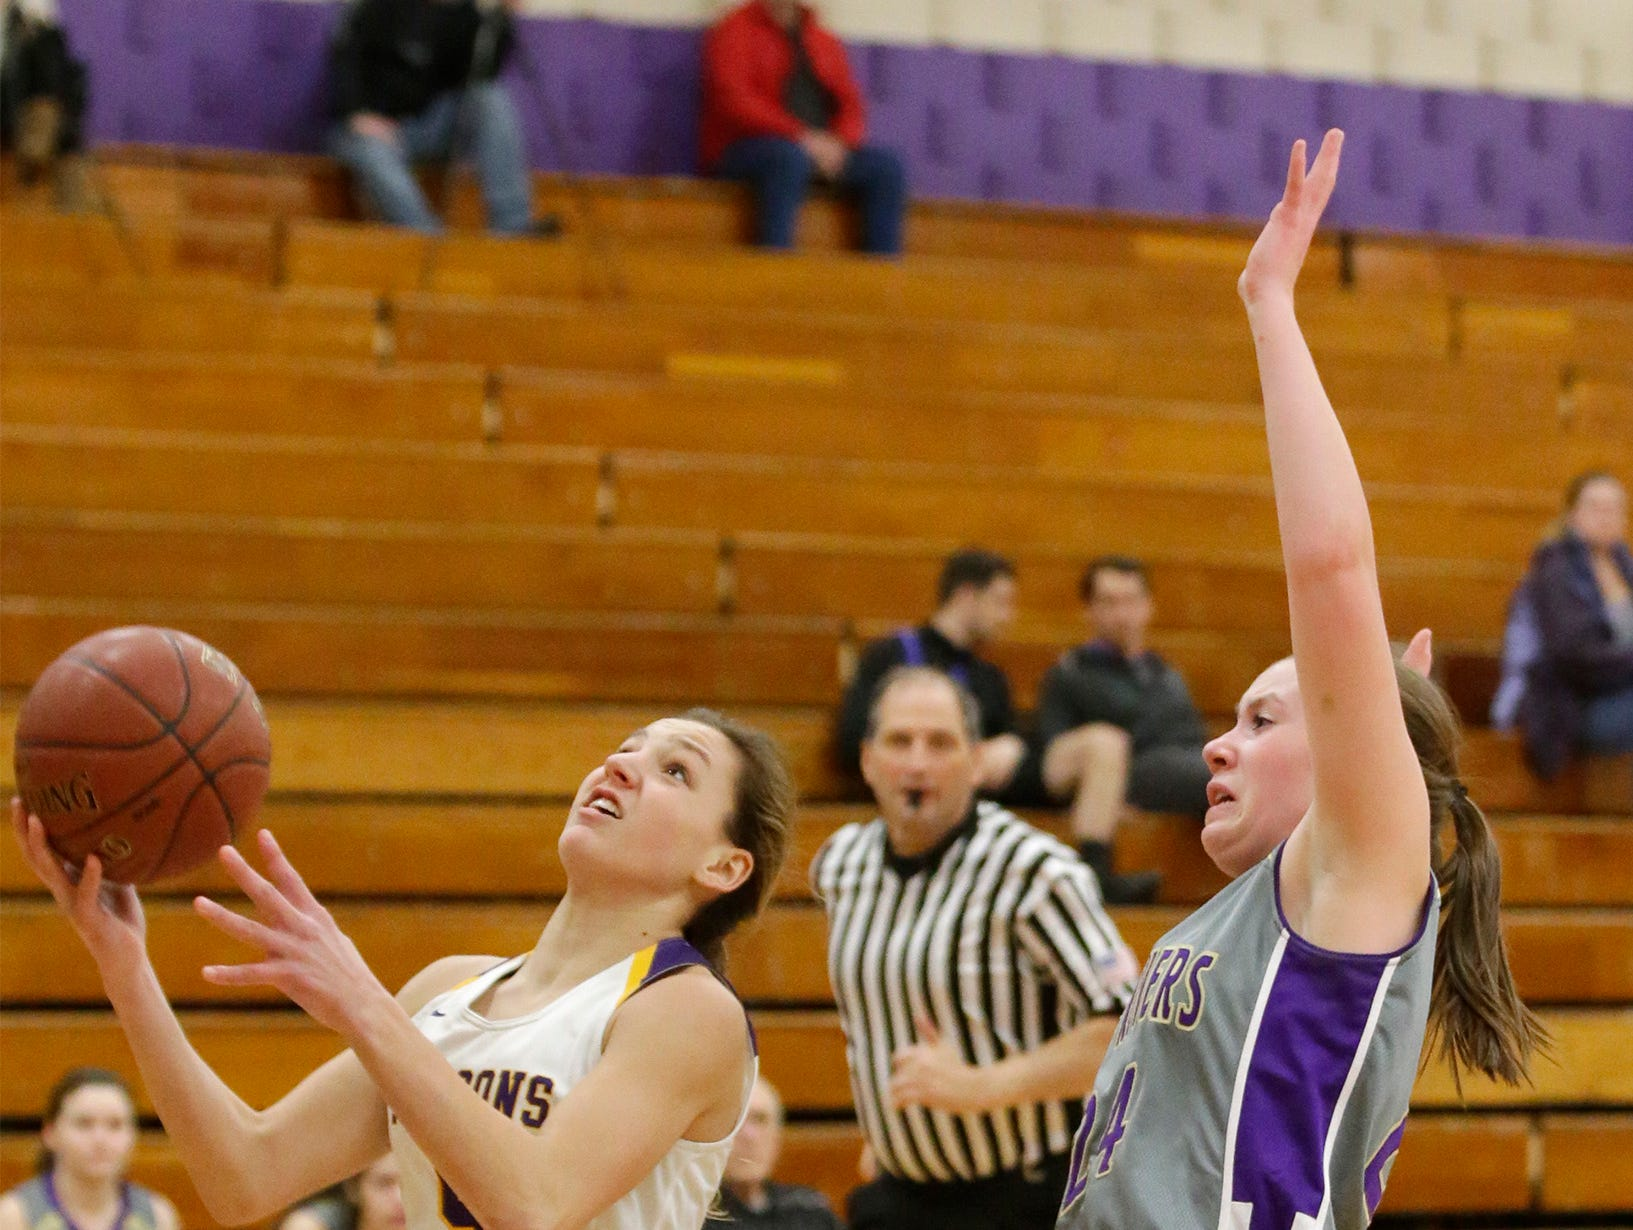 Sheboygan Falls' Madellaine (5) thrusts a shot to the rim against Two Rivers, Thursday, February 14, 2019, in Sheboygan Falls, Wis.